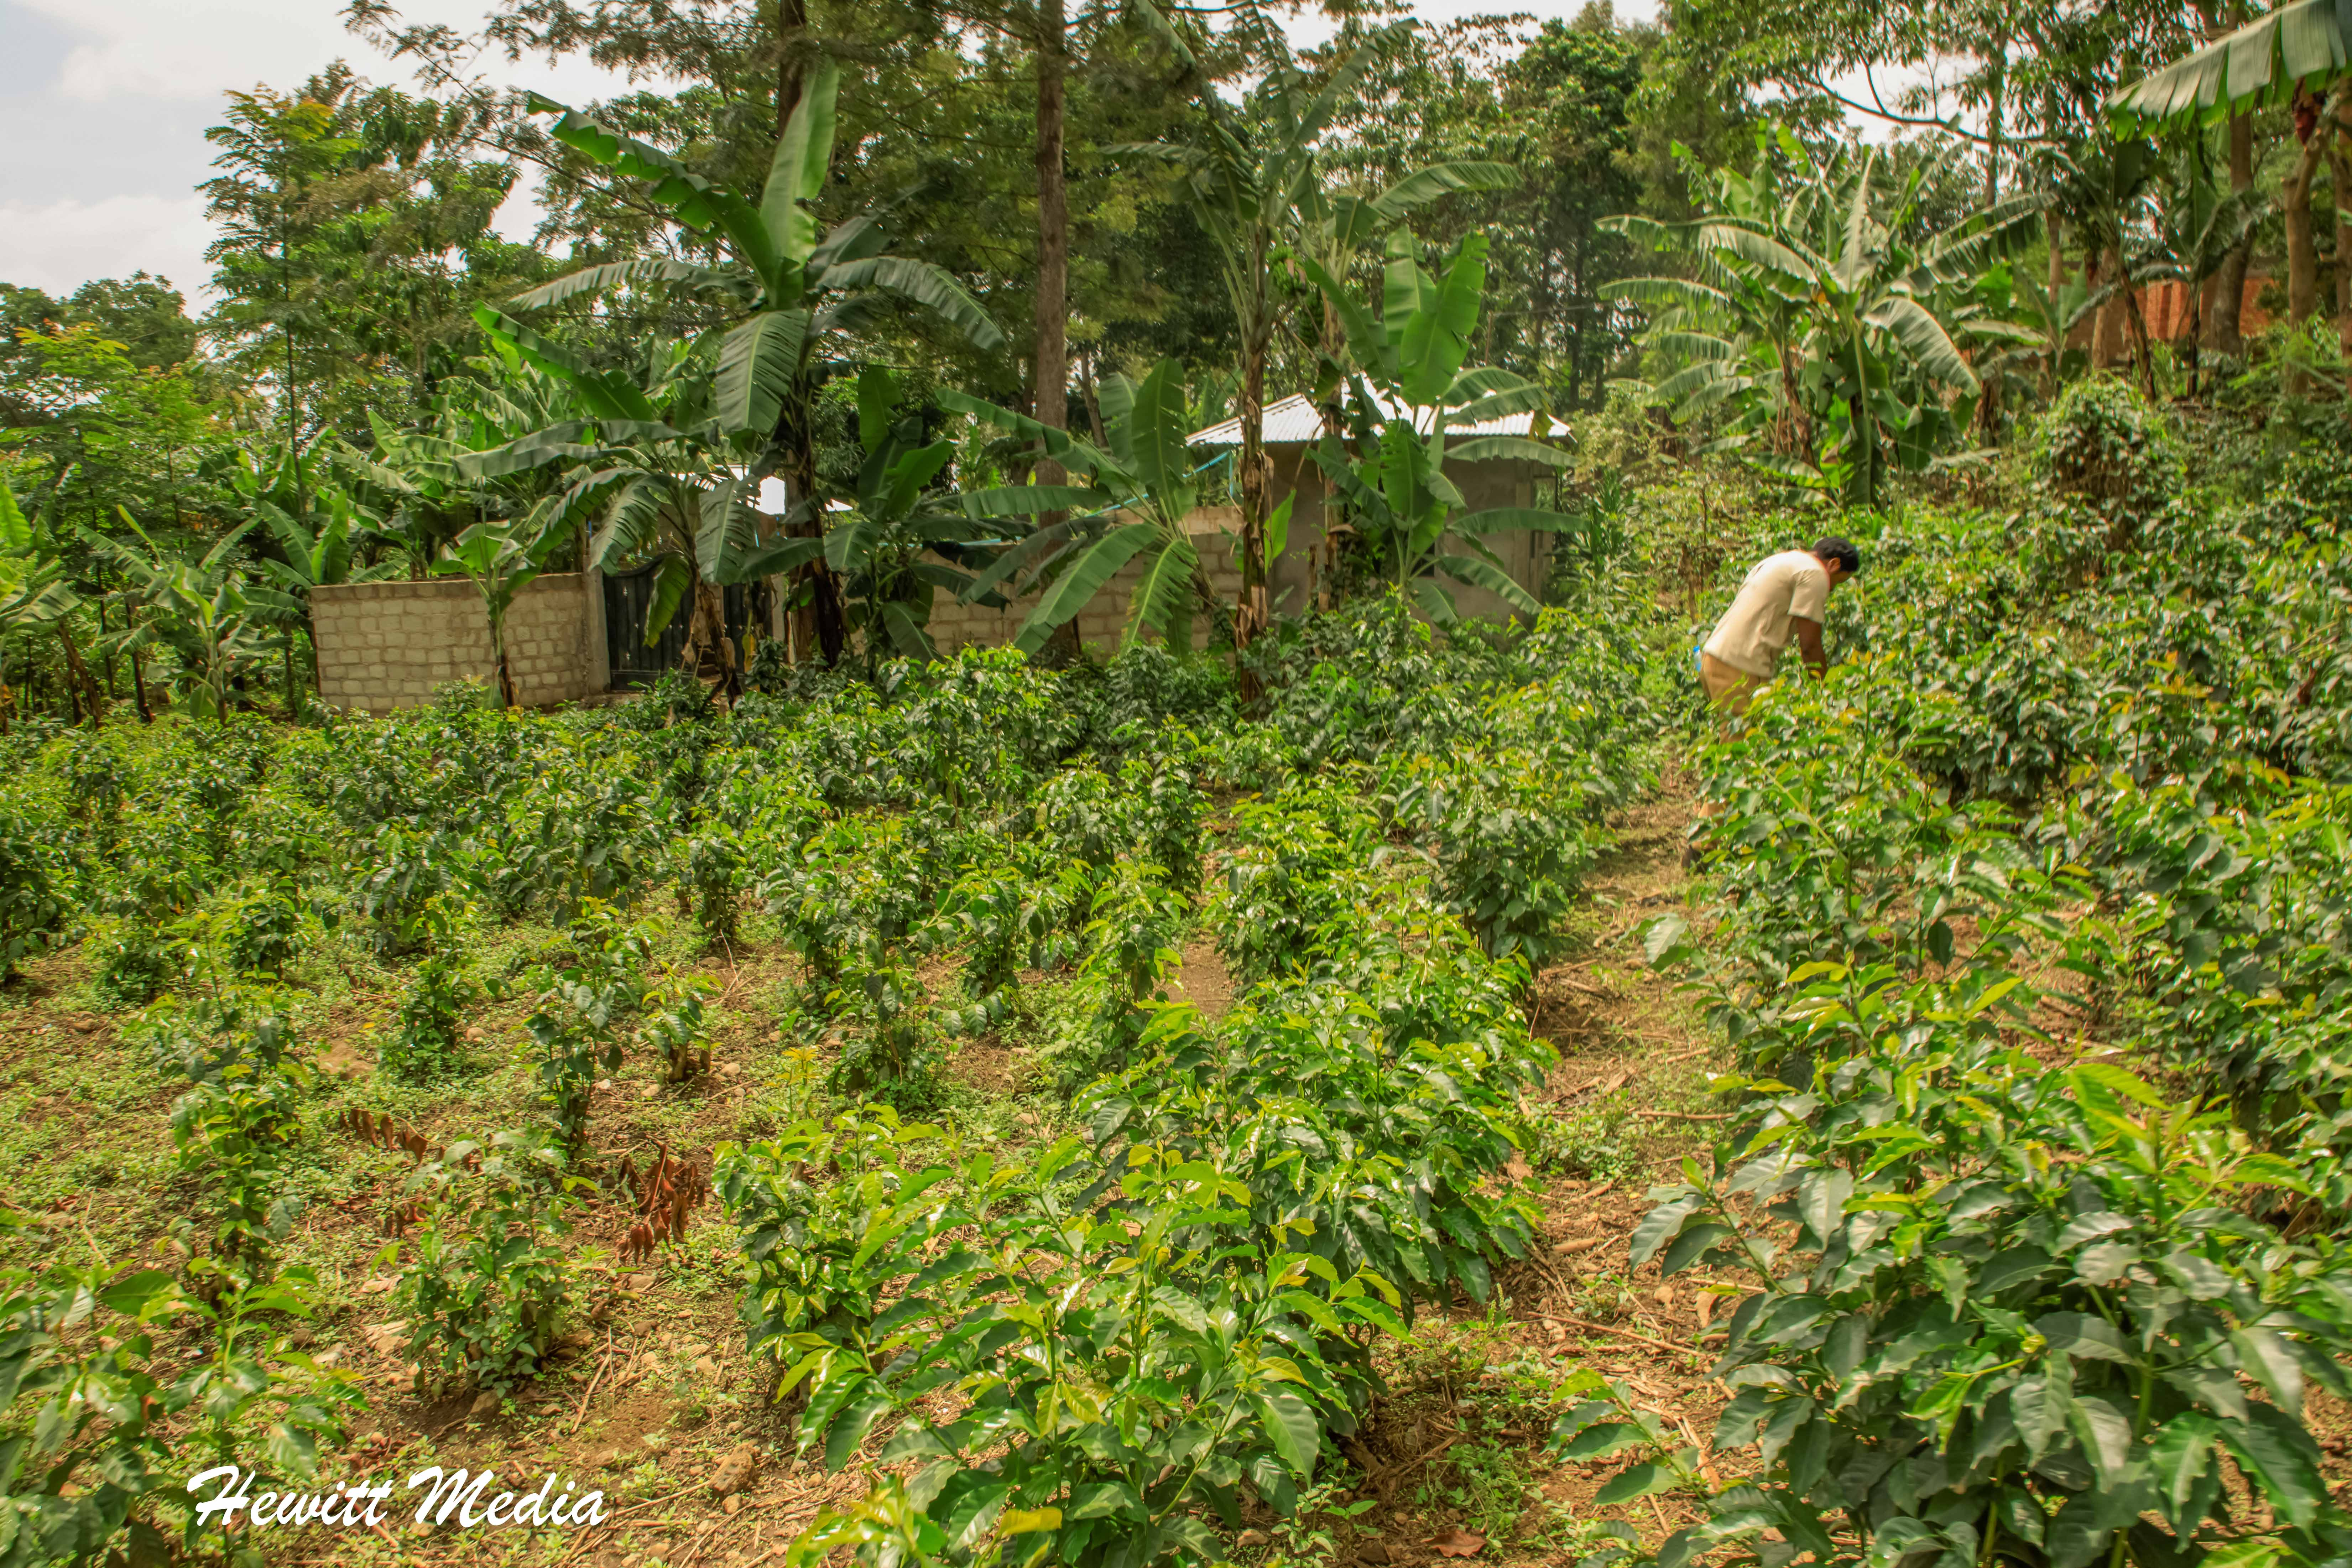 The coffee fields